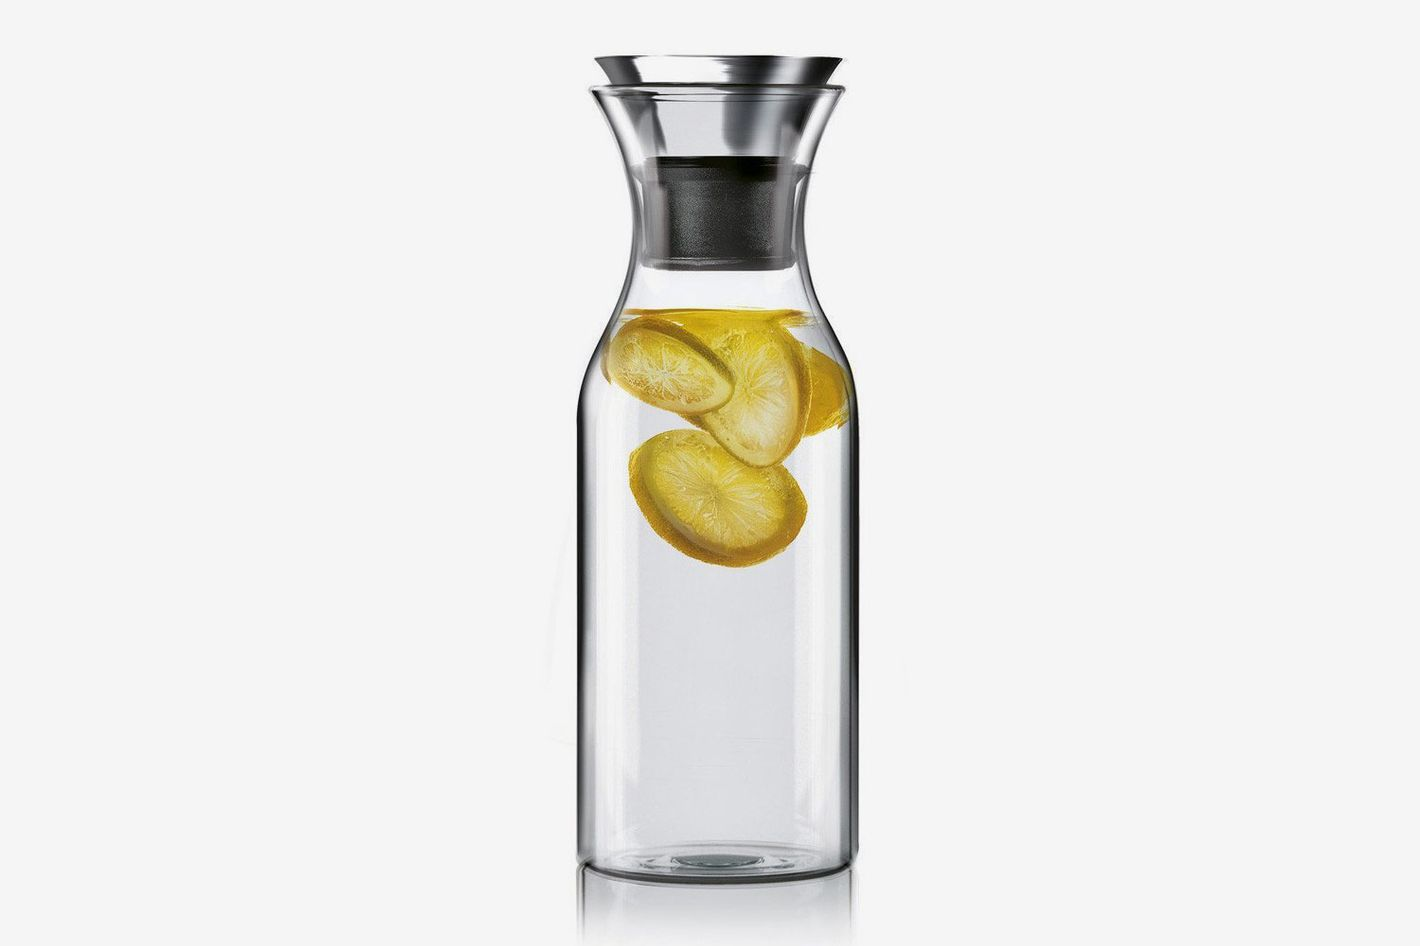 Hiware 35 Oz. Glass Carafe With Stainless Steel Silicone Flip-top Lid